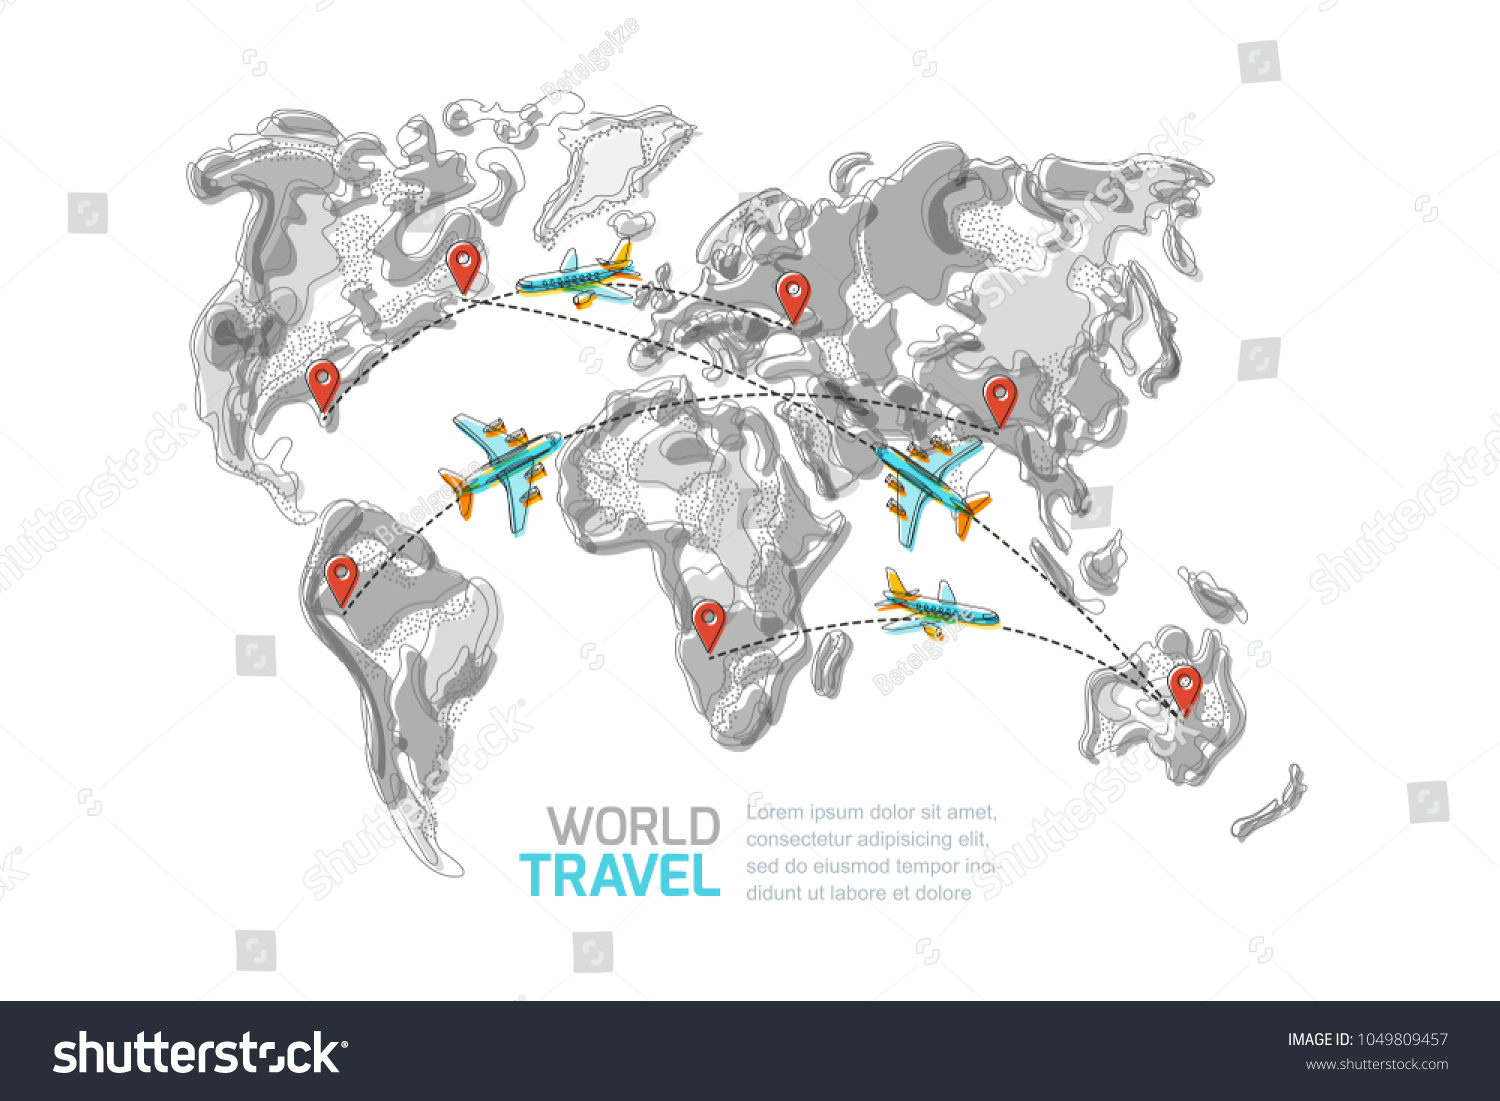 Vector abstract grayscale world map red stock vector 1049809457 vector abstract grayscale world map with red pins and blue flying airplanes top view illustration gumiabroncs Image collections